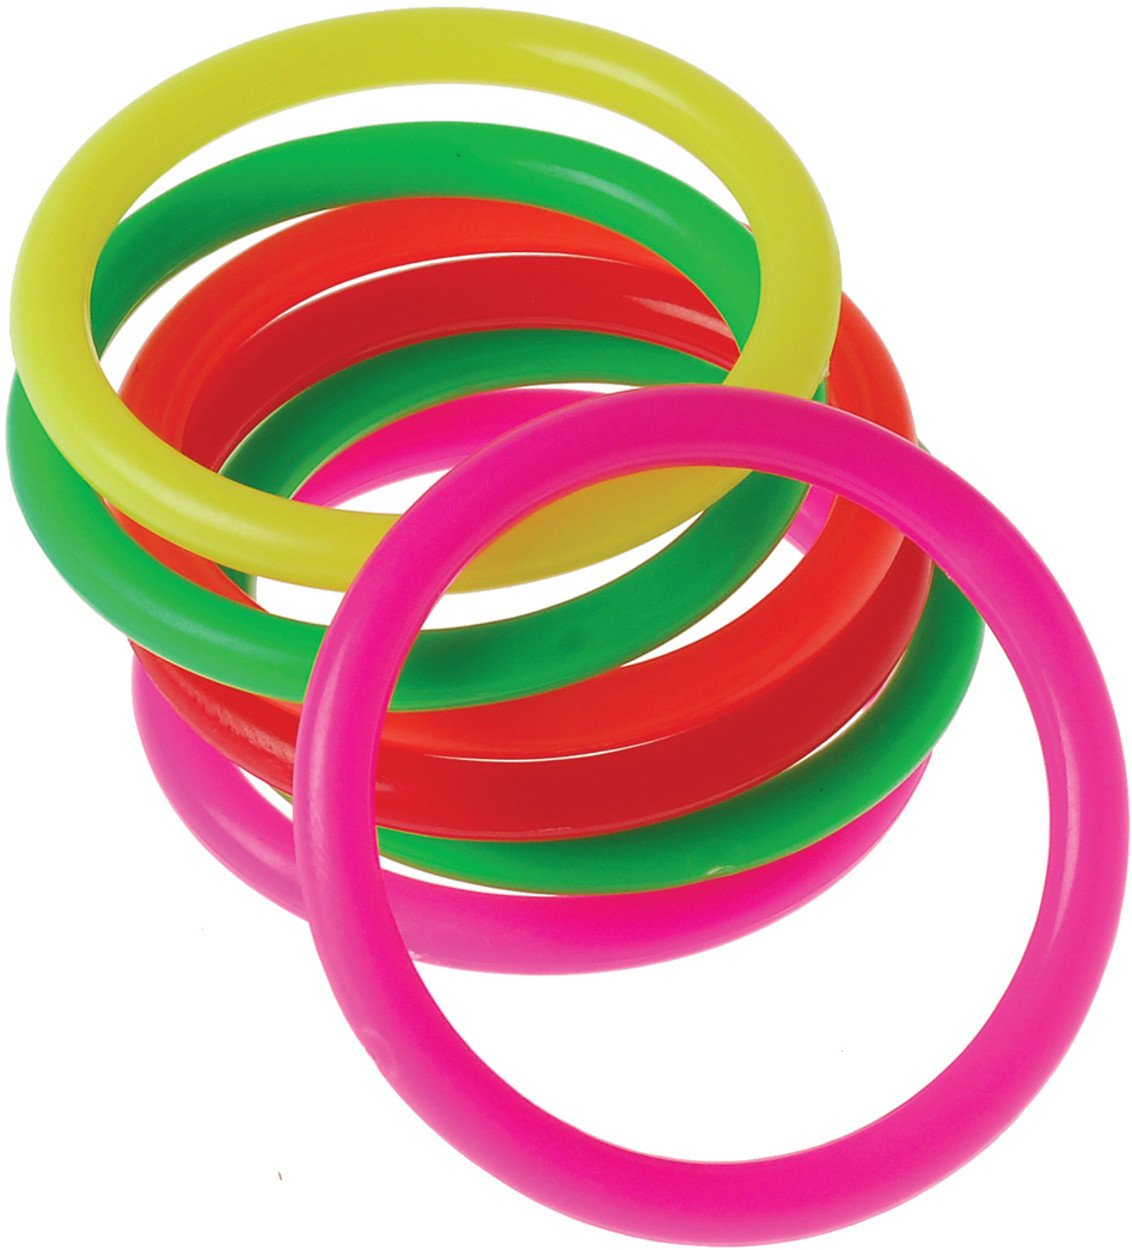 Carnival ring toss rings